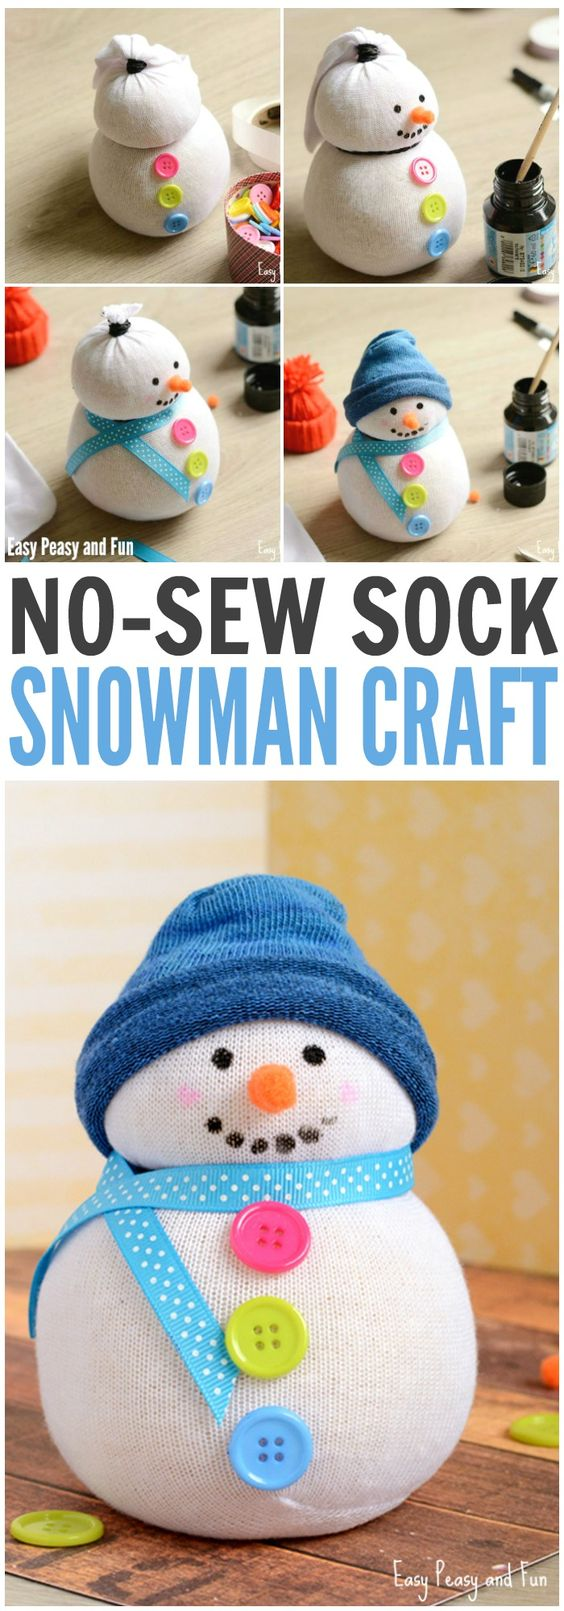 Simple And Cute Snowman Craft Ideas That You Can Try When Are Bored